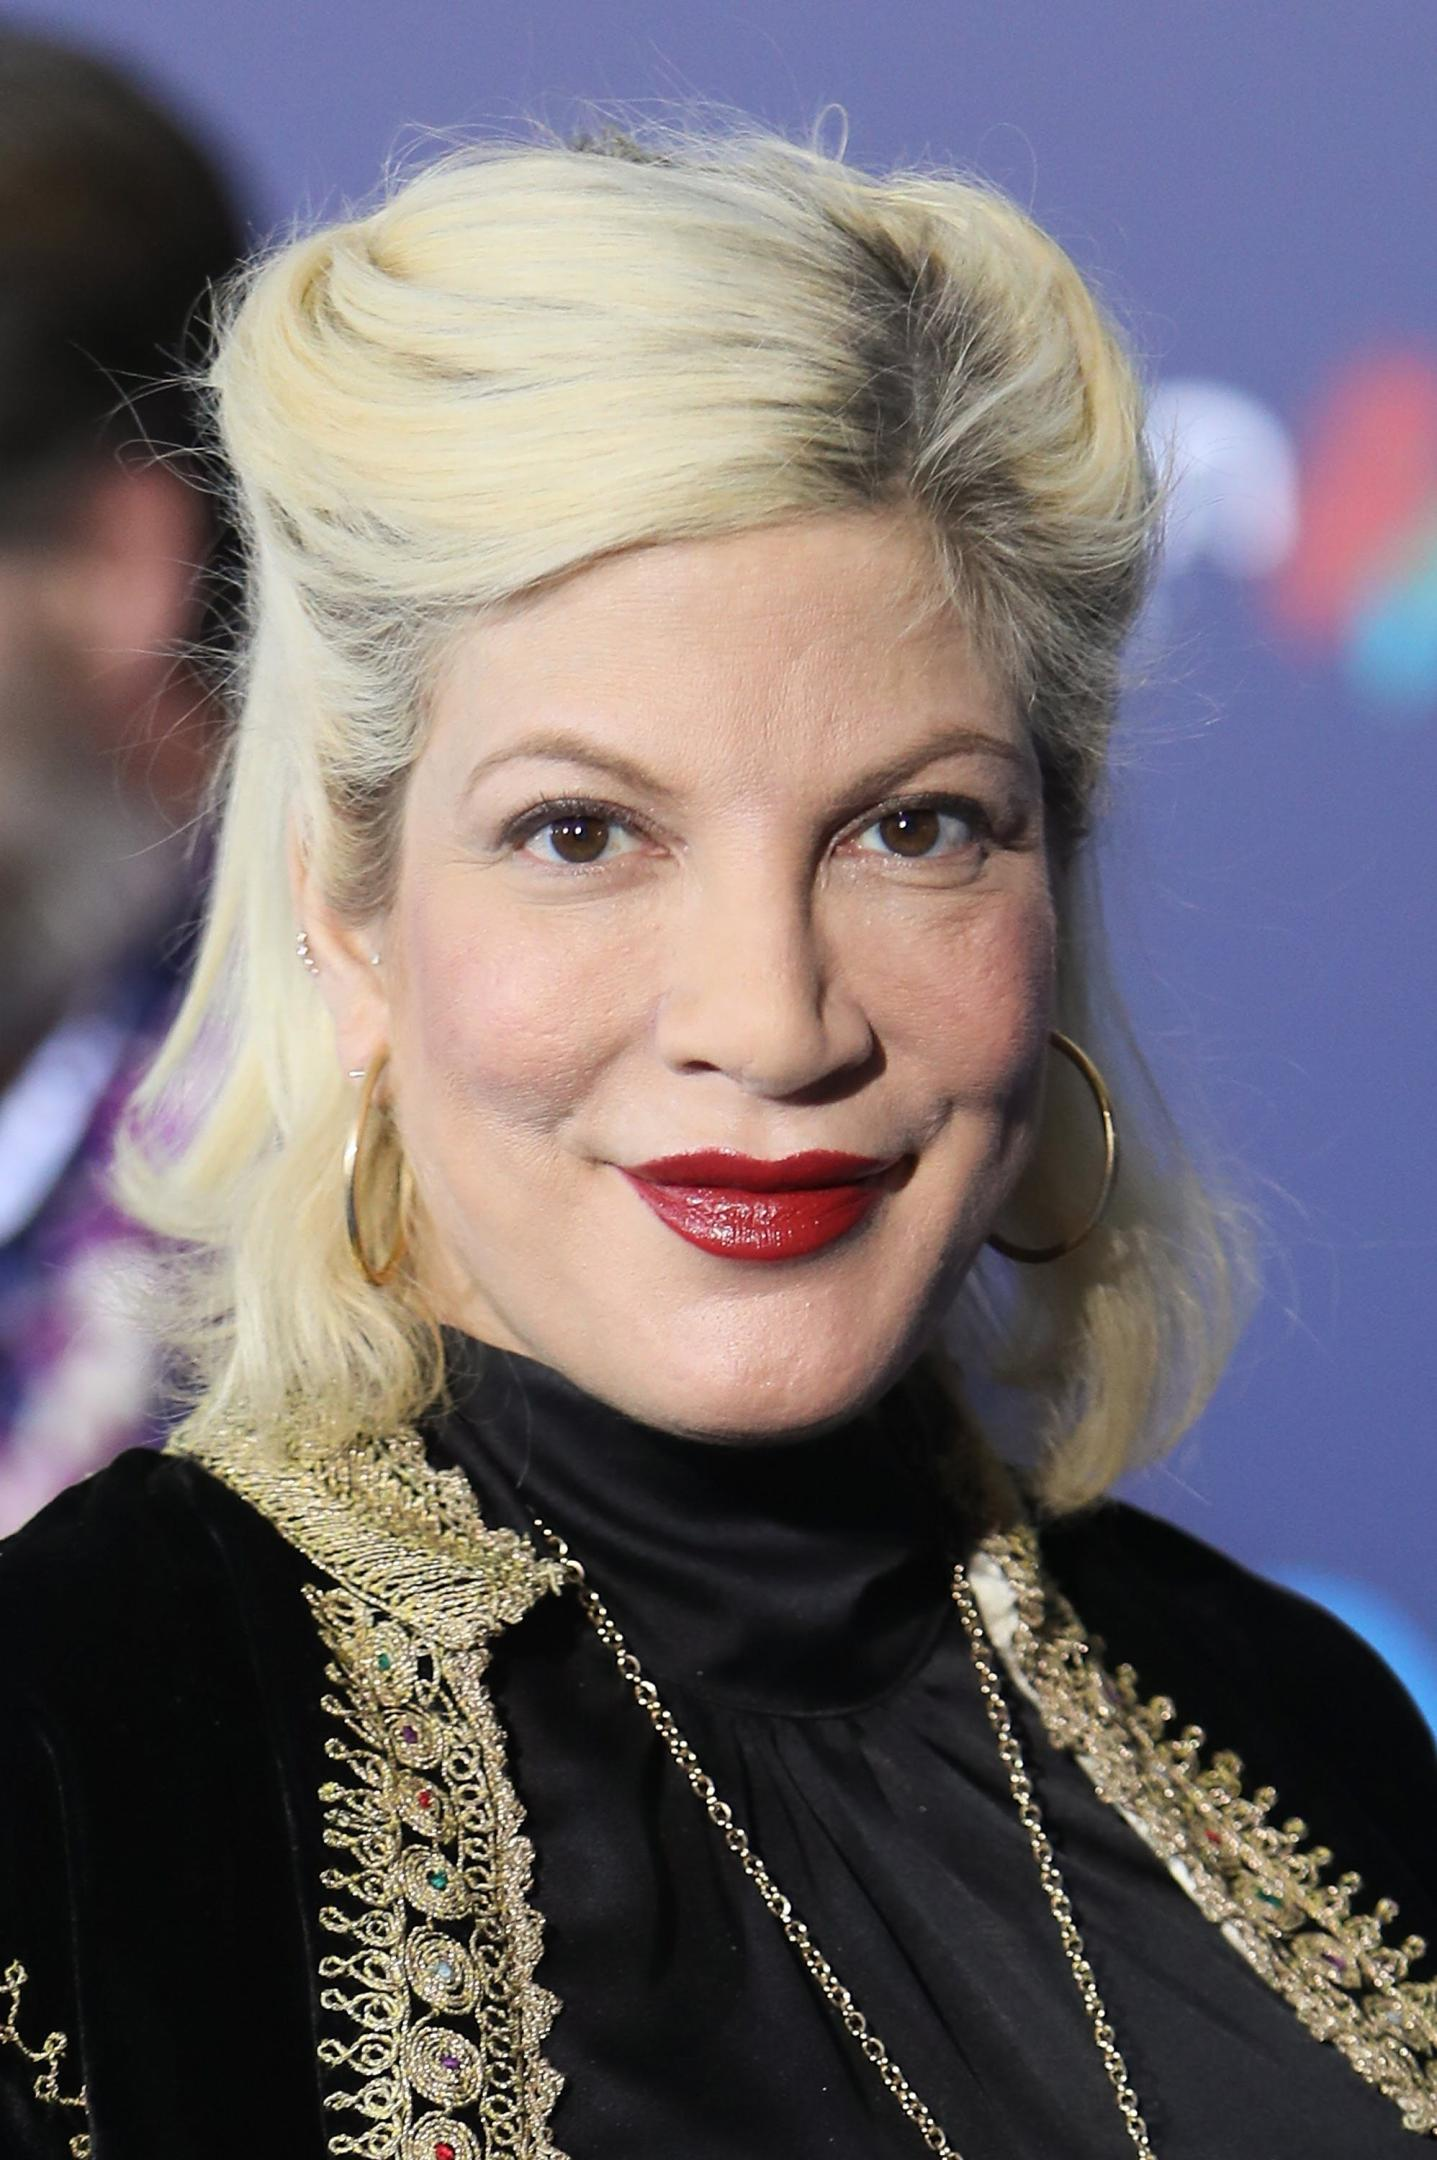 Tori Spelling Plastic Surgery Before After Pictures 1